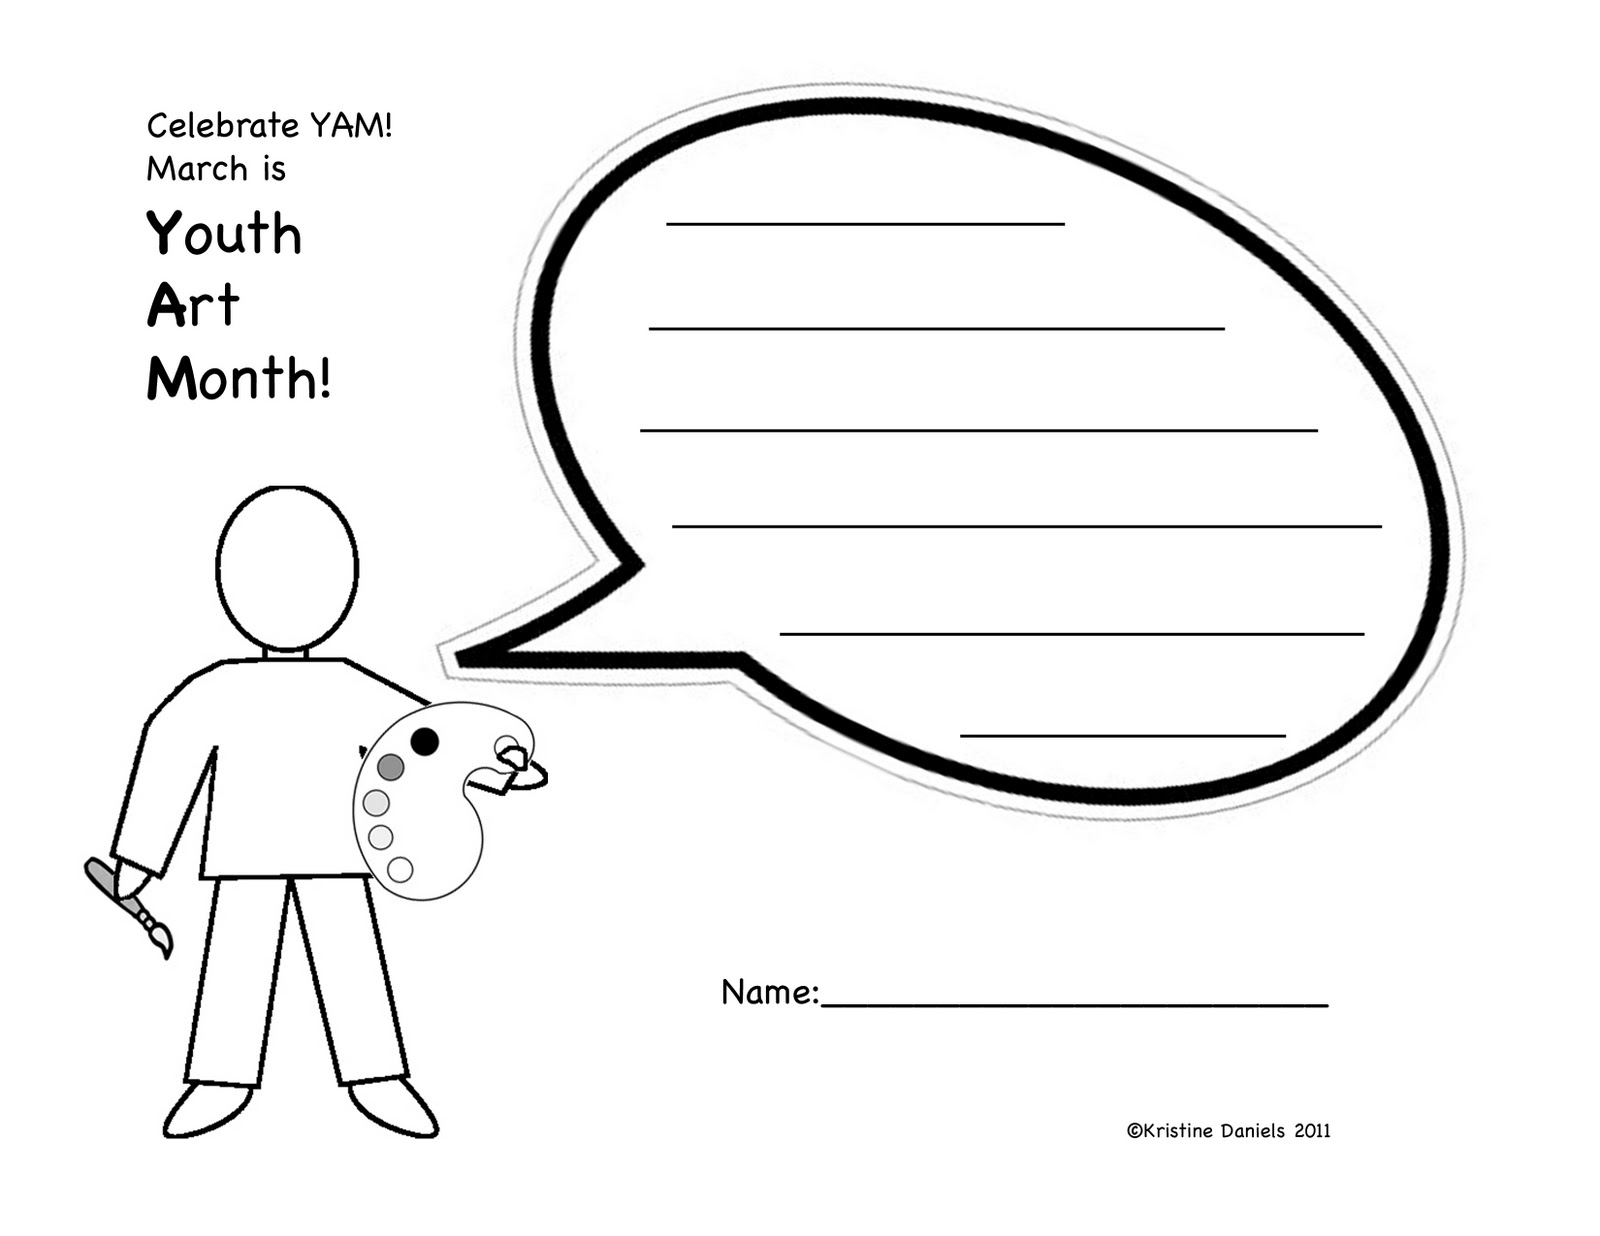 Blank Person Template For Kids A cartoon person that kids